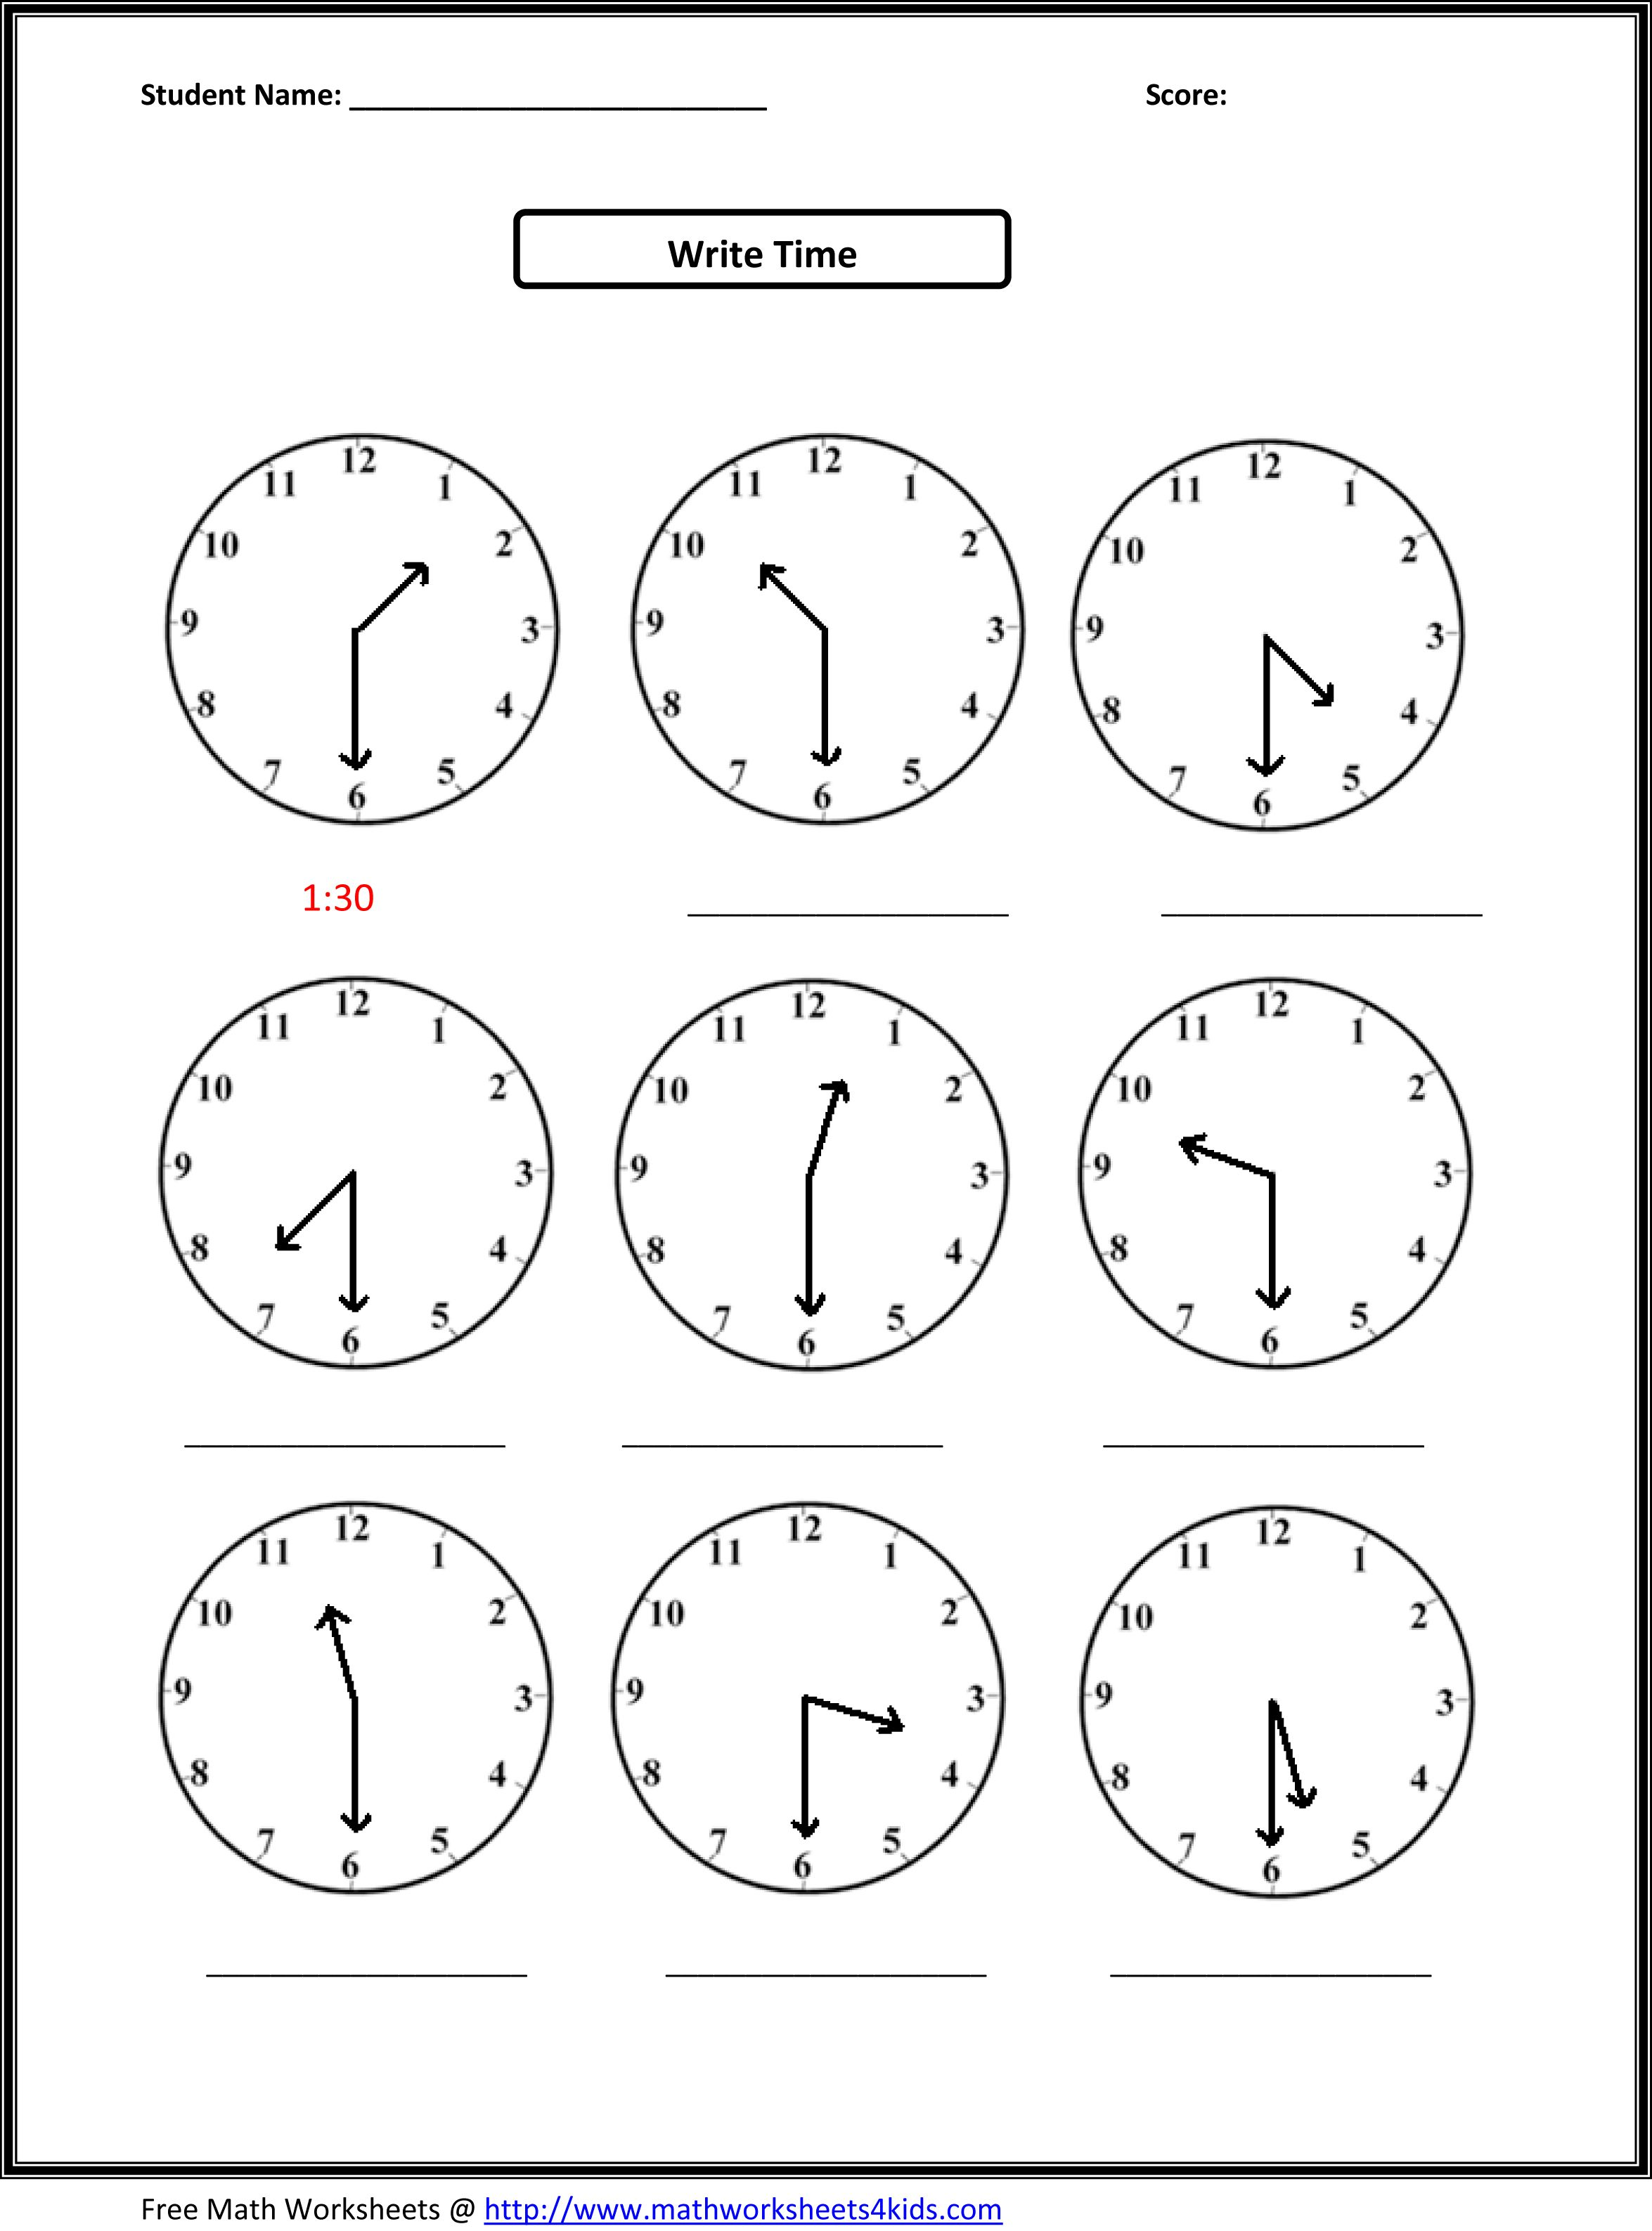 Proatmealus  Unique Worksheet On Time For Grade   Reocurent With Goodlooking Free Printable Telling Time Worksheets Nd Grade  Reocurent With Adorable Mathematics Grade  Worksheets Also Skip Counting By  To  Worksheets In Addition Equivalent Decimals Worksheet And Cartesian Coordinate Plane Worksheets As Well As  Times Table Worksheets Additionally Simplifying Ratio Worksheet From Reocurentcom With Proatmealus  Goodlooking Worksheet On Time For Grade   Reocurent With Adorable Free Printable Telling Time Worksheets Nd Grade  Reocurent And Unique Mathematics Grade  Worksheets Also Skip Counting By  To  Worksheets In Addition Equivalent Decimals Worksheet From Reocurentcom